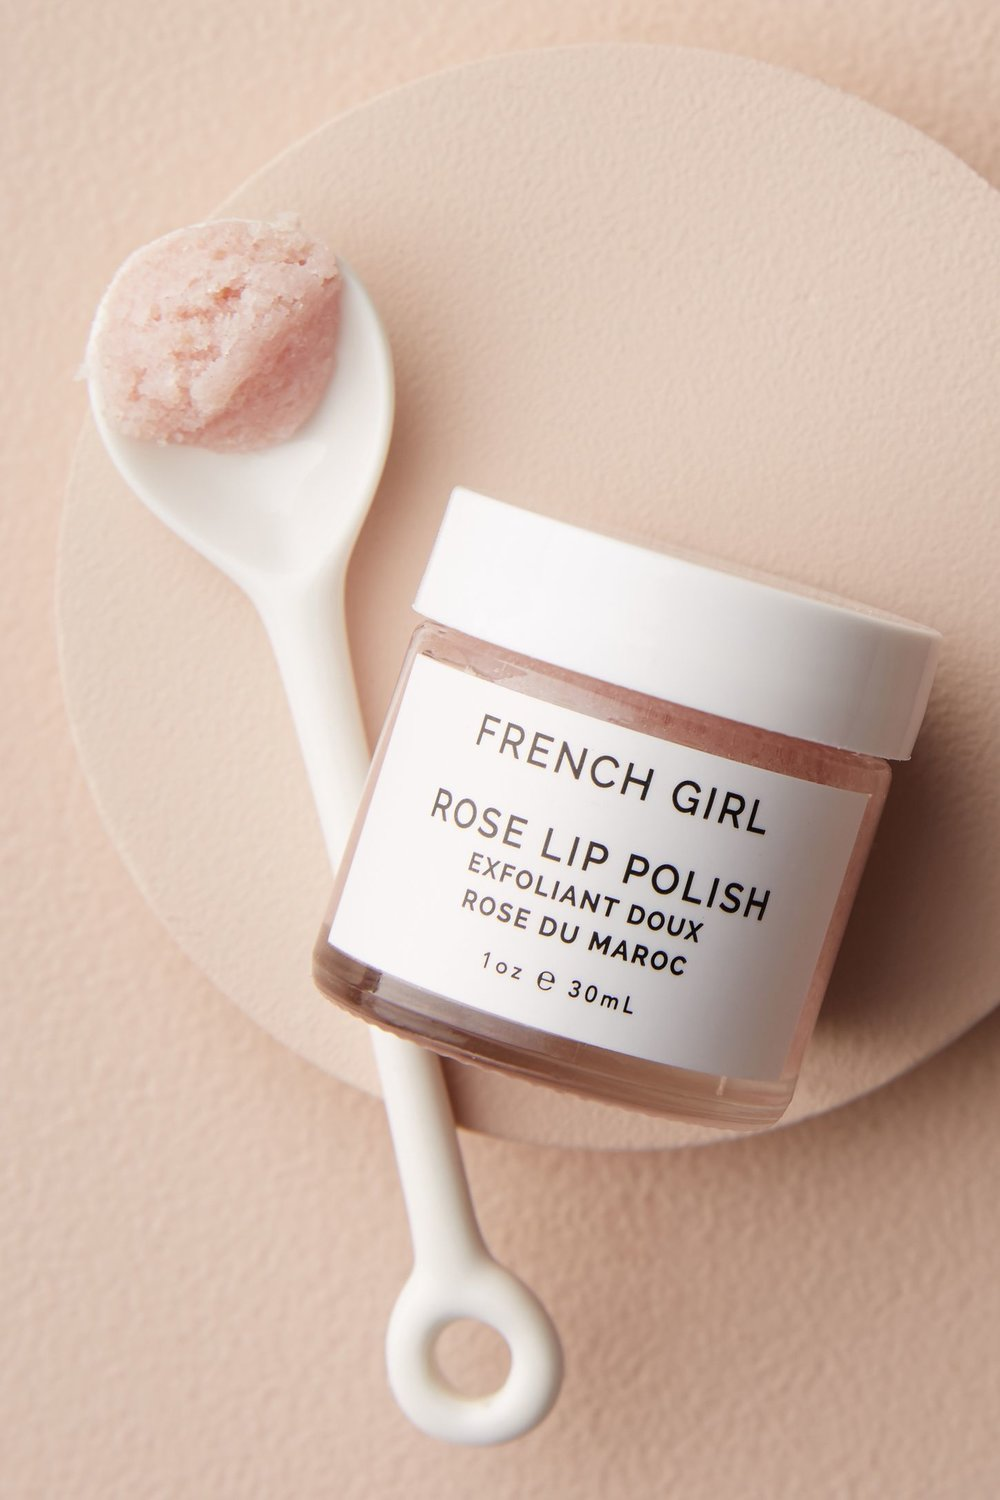 Rose Lip Polish by French Girl ($15) - This rosy scrub is available at Madewell (my favorite winter wardrobe stop) and it exfoliates your lips while leaving them prepped for lipstick and stains. Plus, with ingredients like organic shea butter, coconut oil, mint & rose geranium essential oils, and good old fashioned sugar, you'll want this on your lips all the time. #sugaraddict